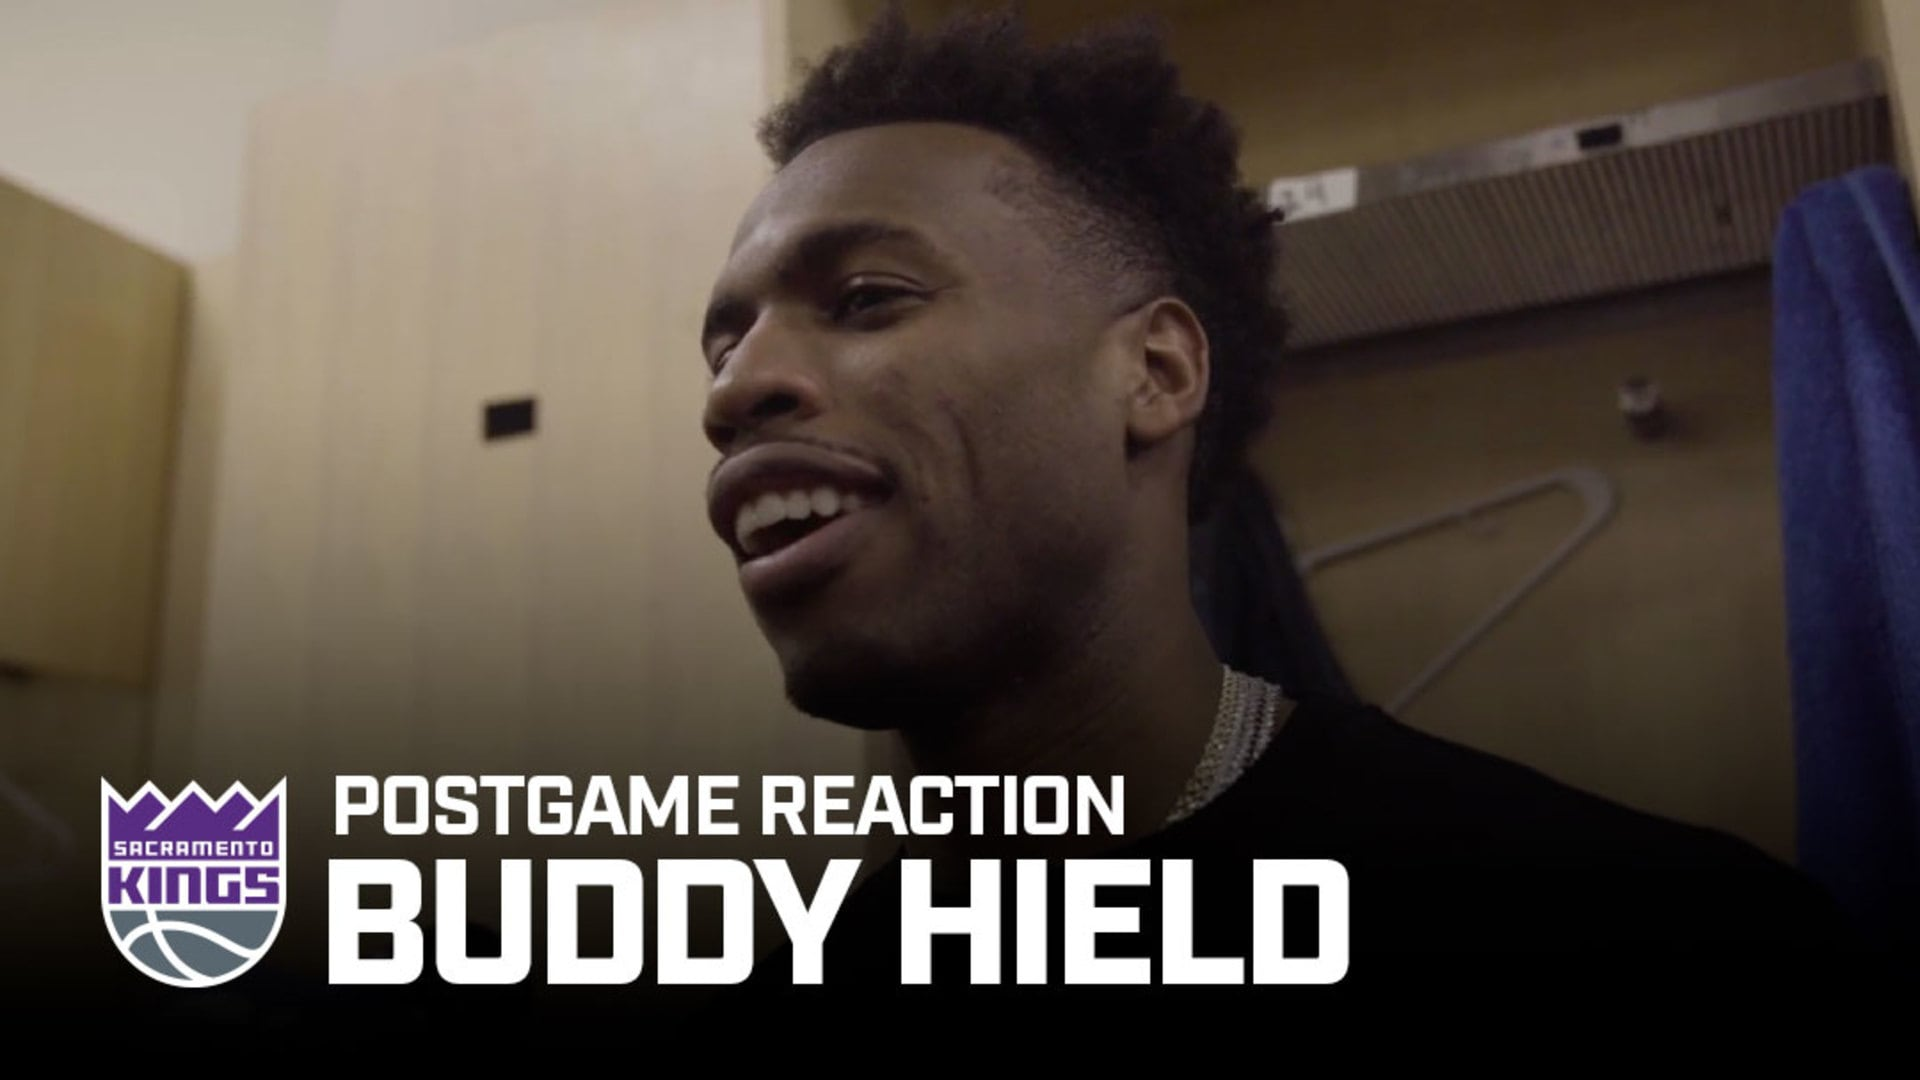 'He Plays Better When He's Pissed' | Buddy Hield Postgame Reaction 11.3.19